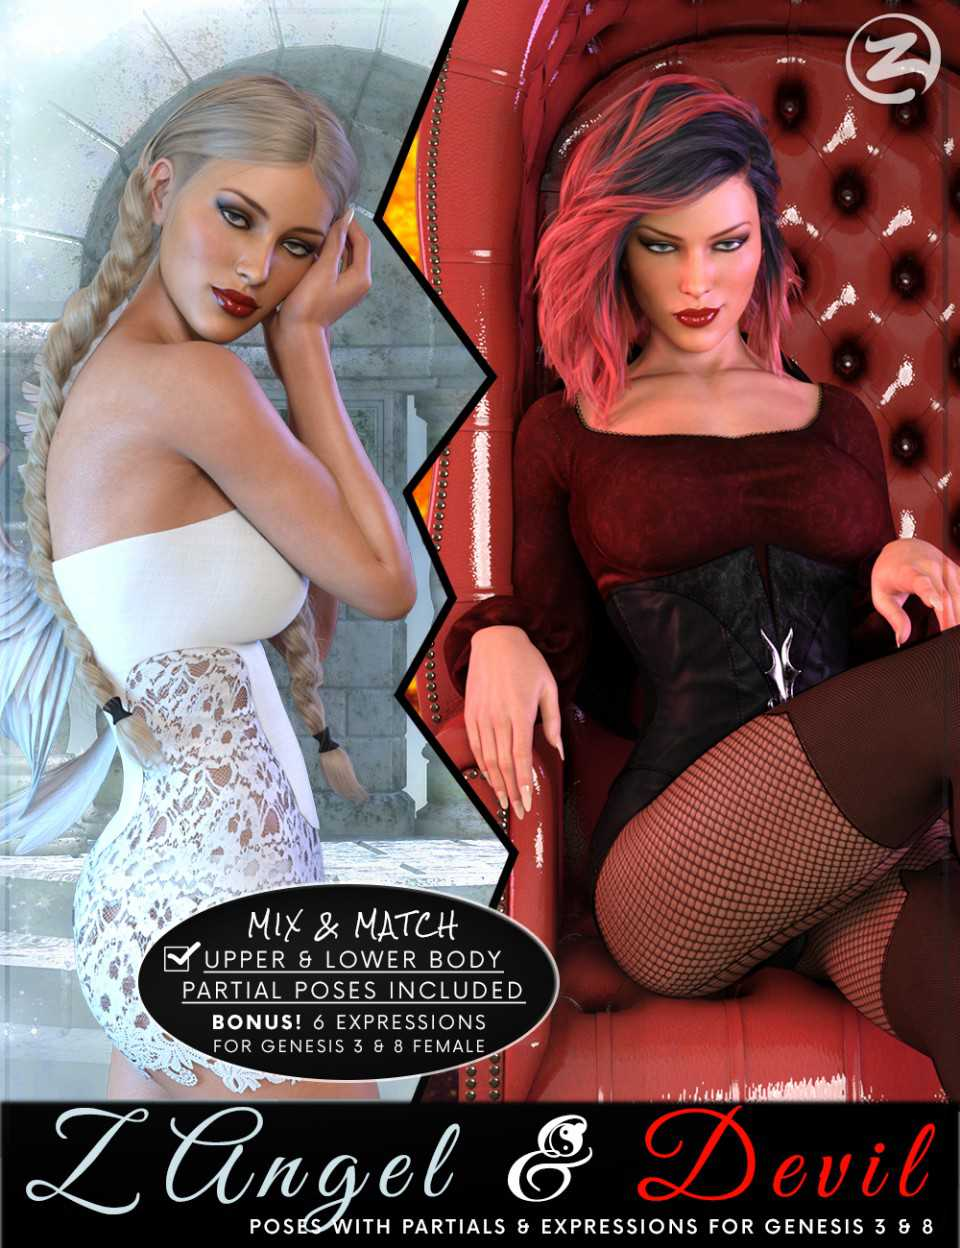 Z Angel & Devil – Poses, Partials and Expressions for Genesis 3 & 8 Female